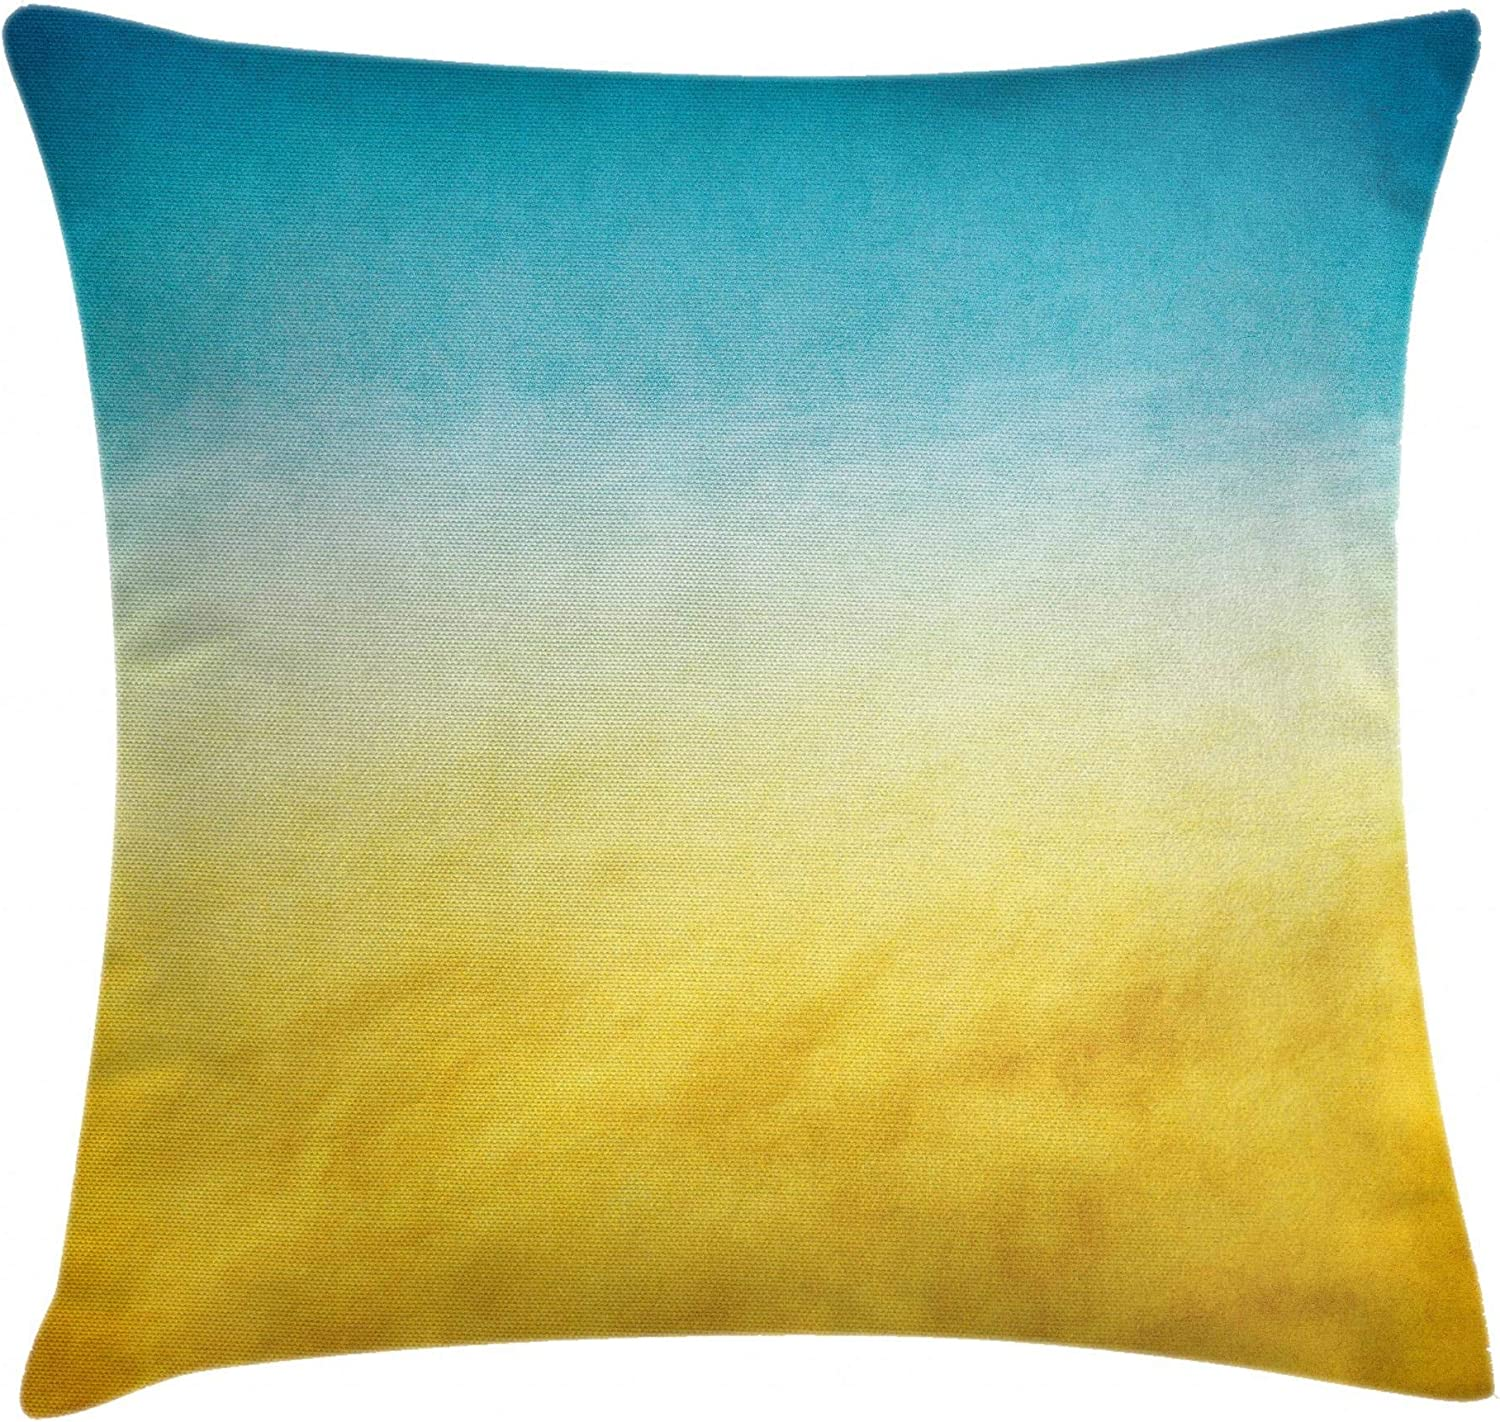 Ambesonne Yellow and Blue Throw Waves Cushion Pillow Surf San Diego Mall 70% OFF Outlet Cover